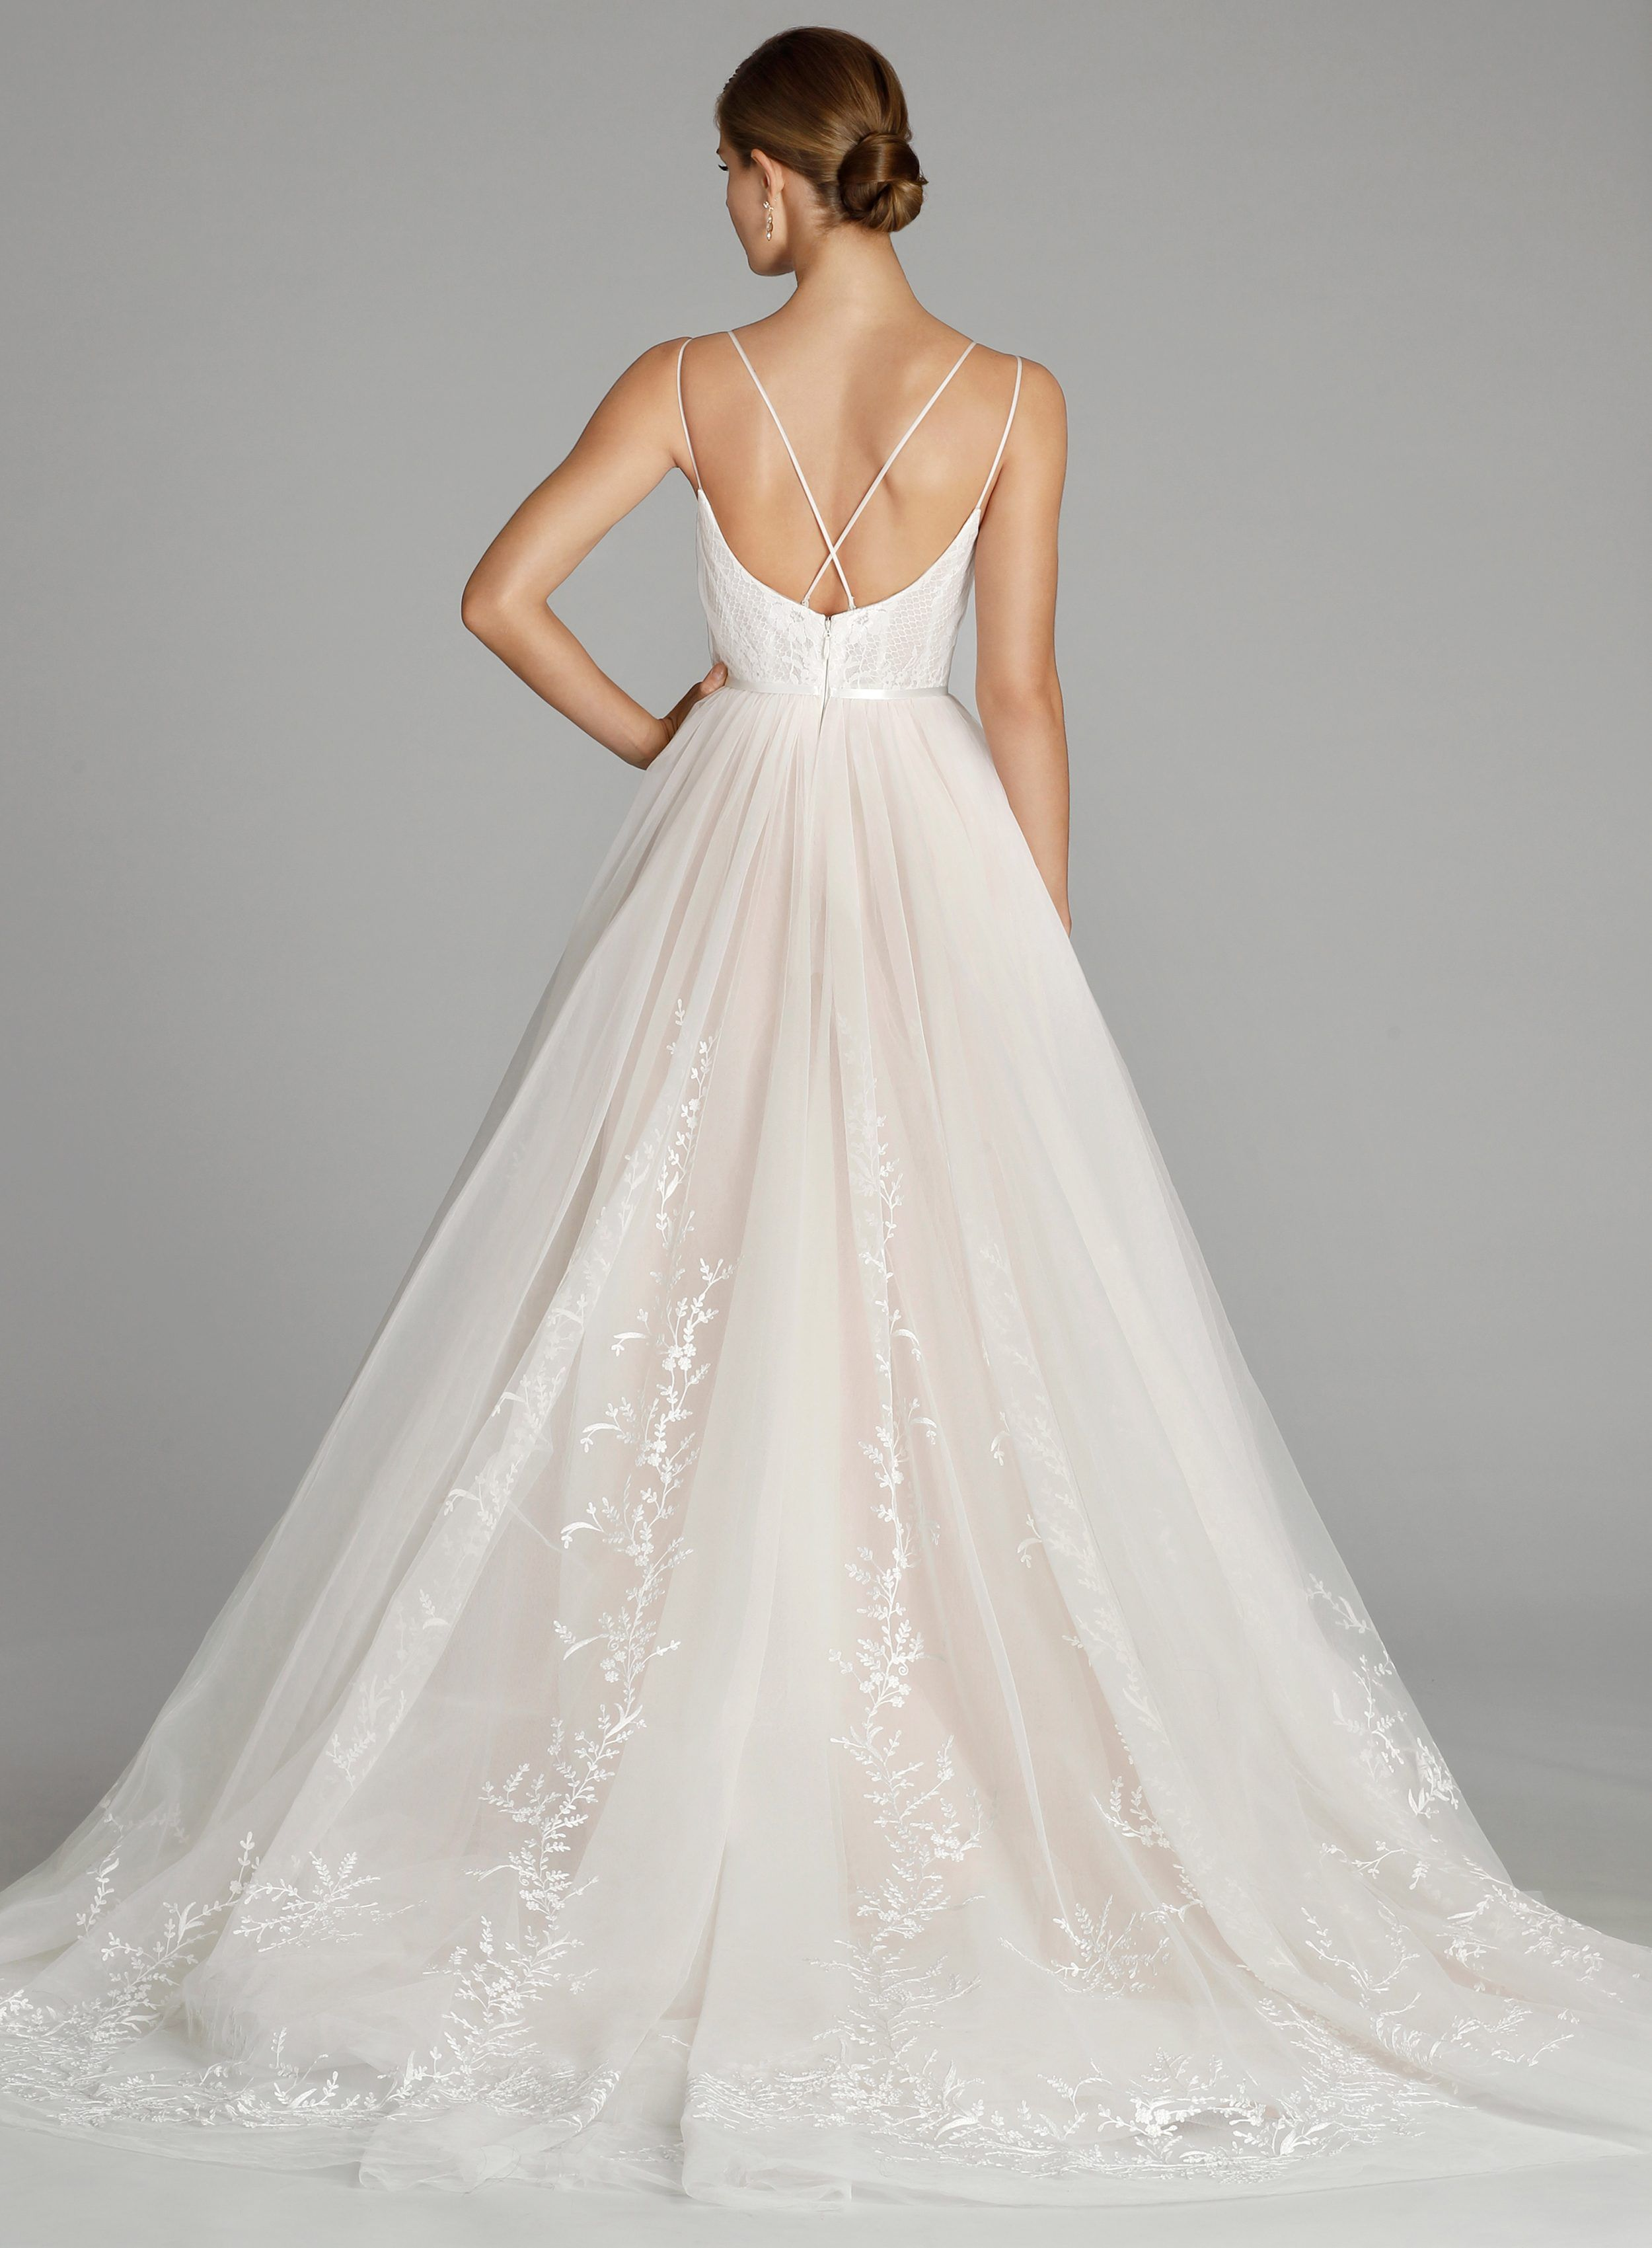 One strap wedding dress  Bridal Gowns and Wedding Dresses by JLM Couture  Style   That